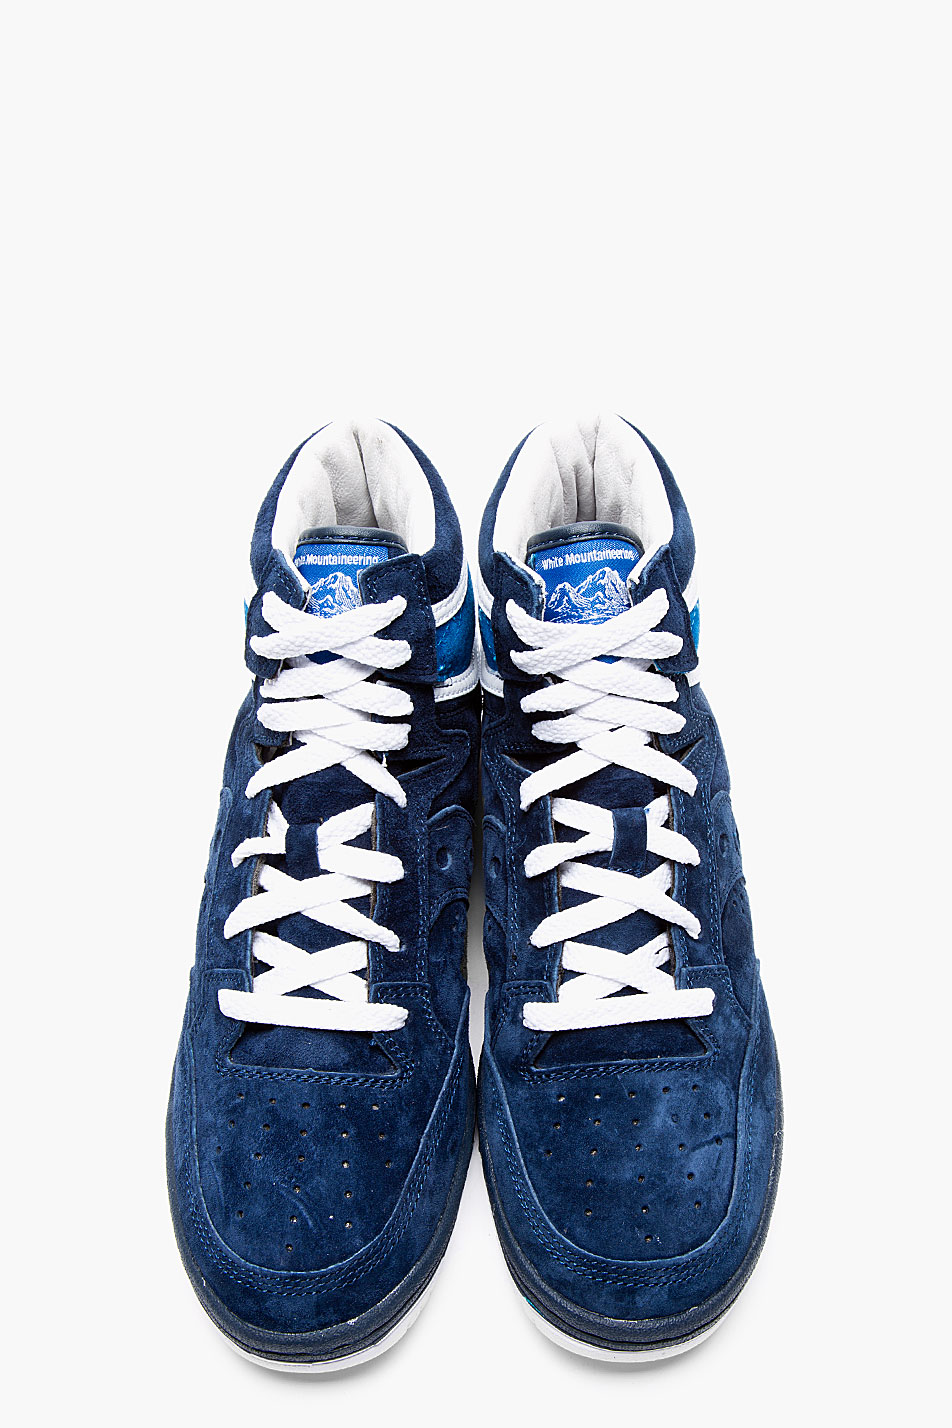 White Mountaineering x Saucony navy suede hangtime sneakers 3